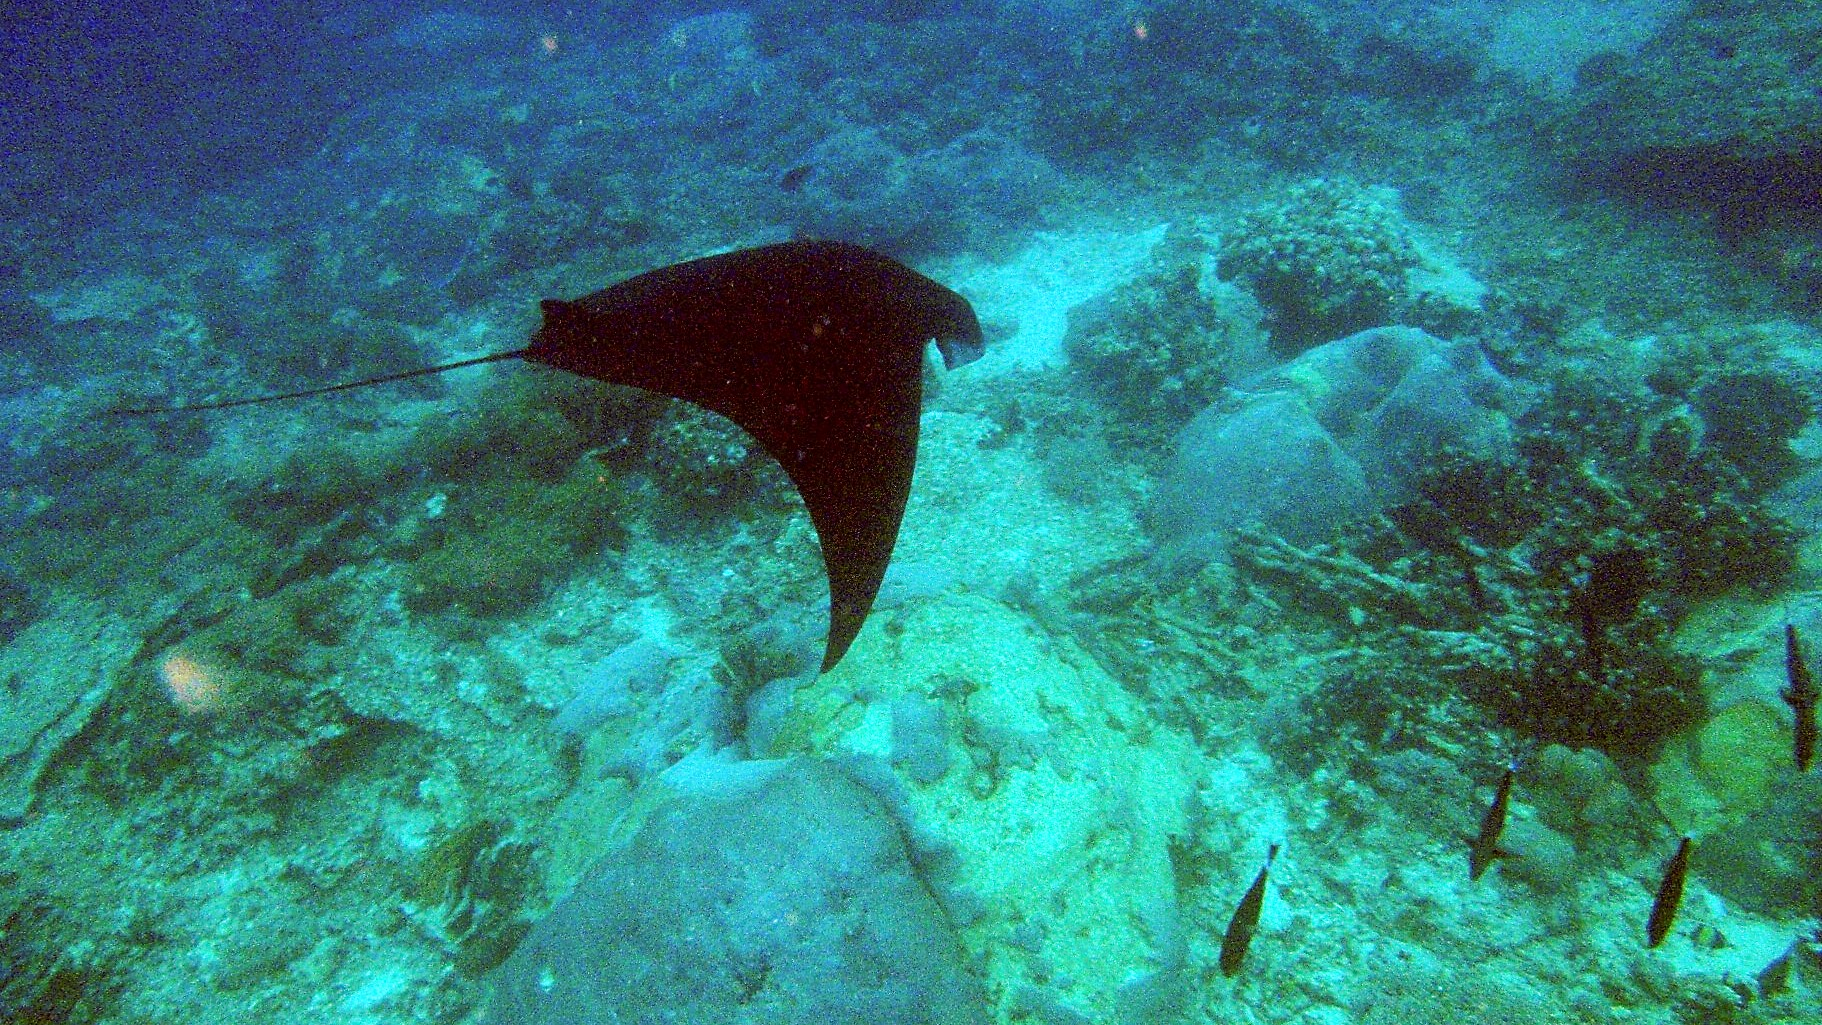 derawan, maratua, sangalaki, kakaban, island,s yelly fish lake, manta, dive, diving, kalimantan, borneo, indonesia, resort, trip, tours, coral reef, jungle, wildlife forest, oragutan